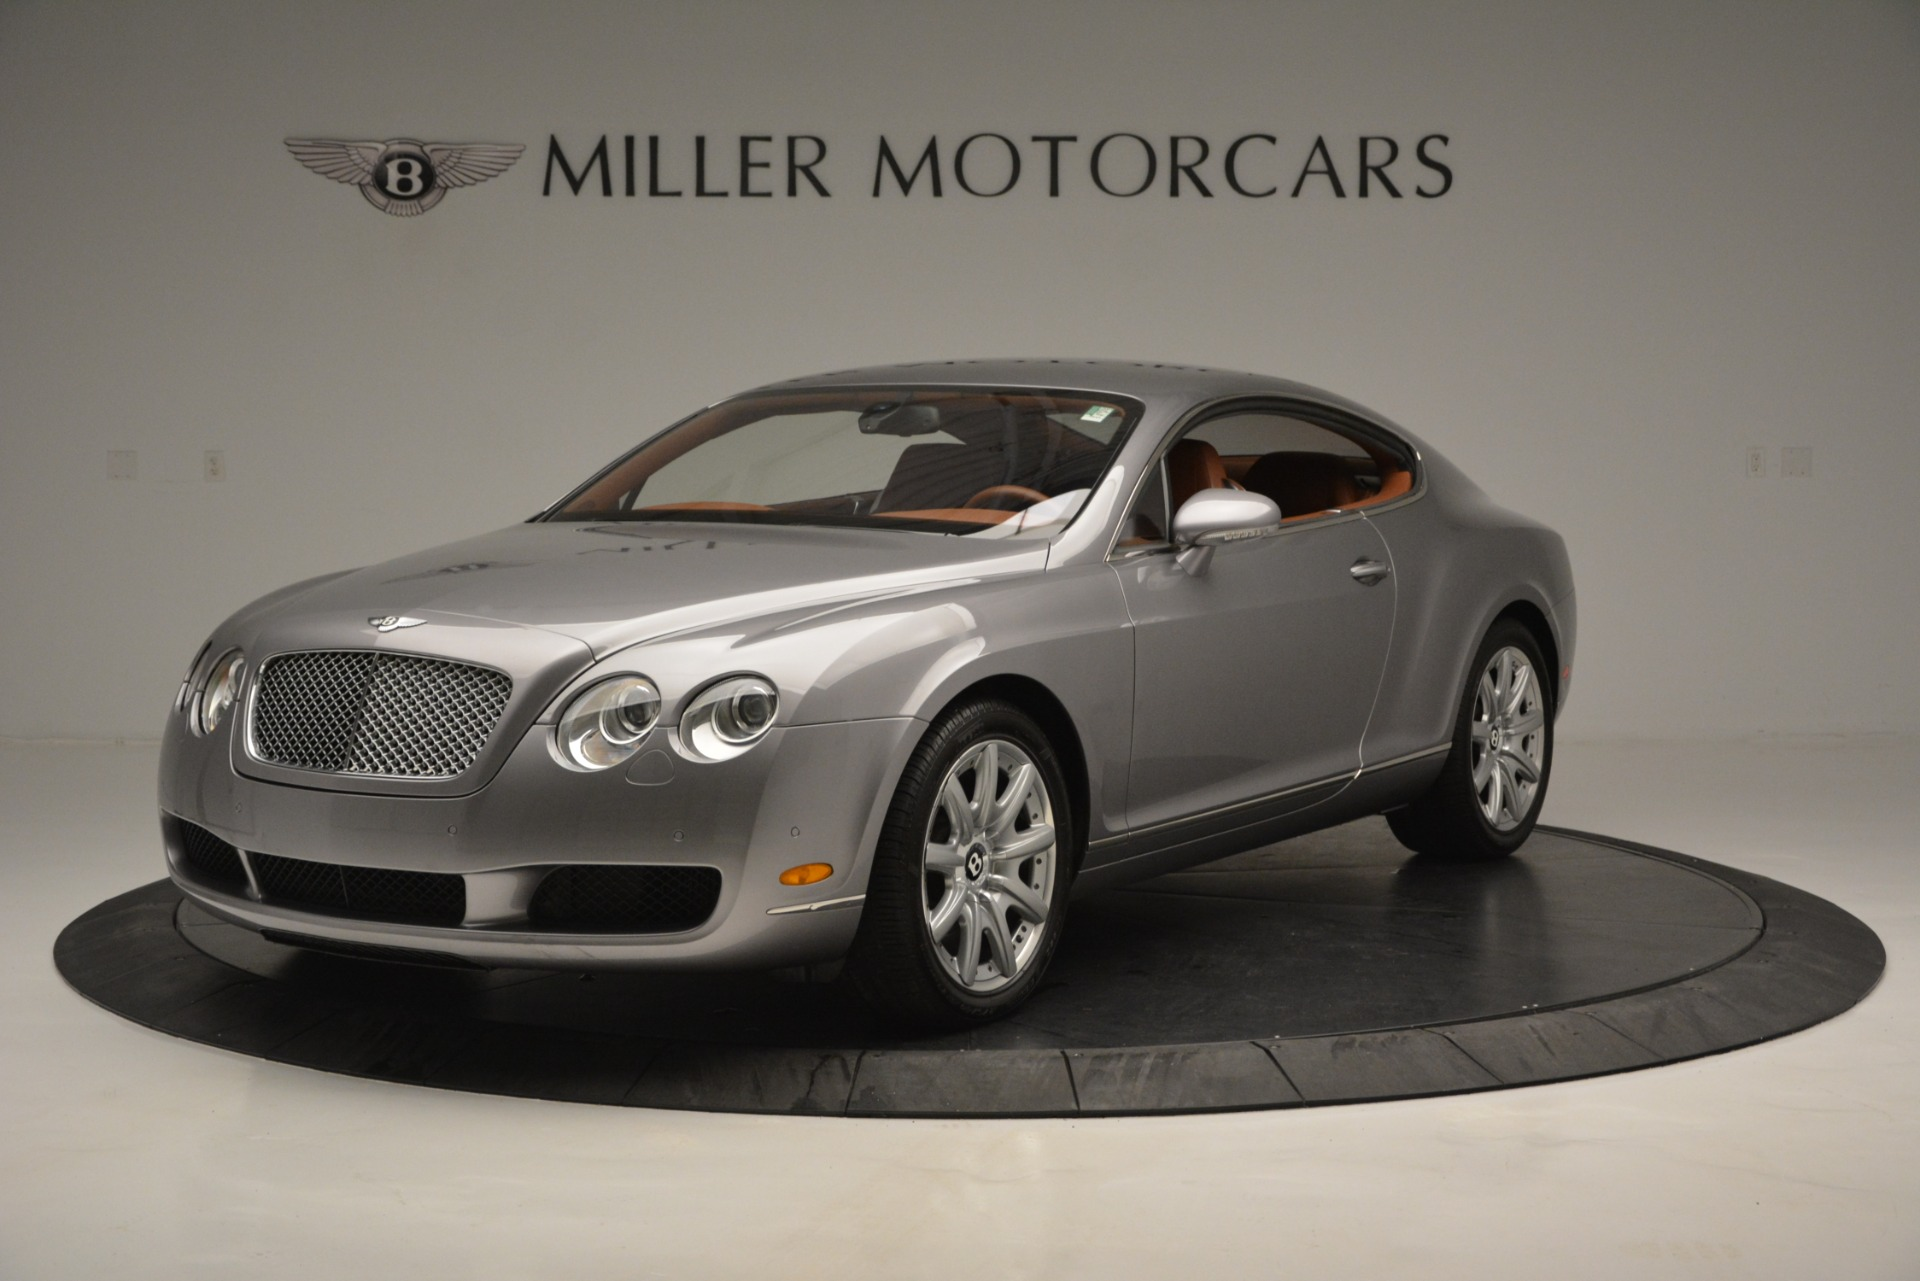 Used 2005 Bentley Continental GT GT Turbo For Sale In Greenwich, CT 2726_main